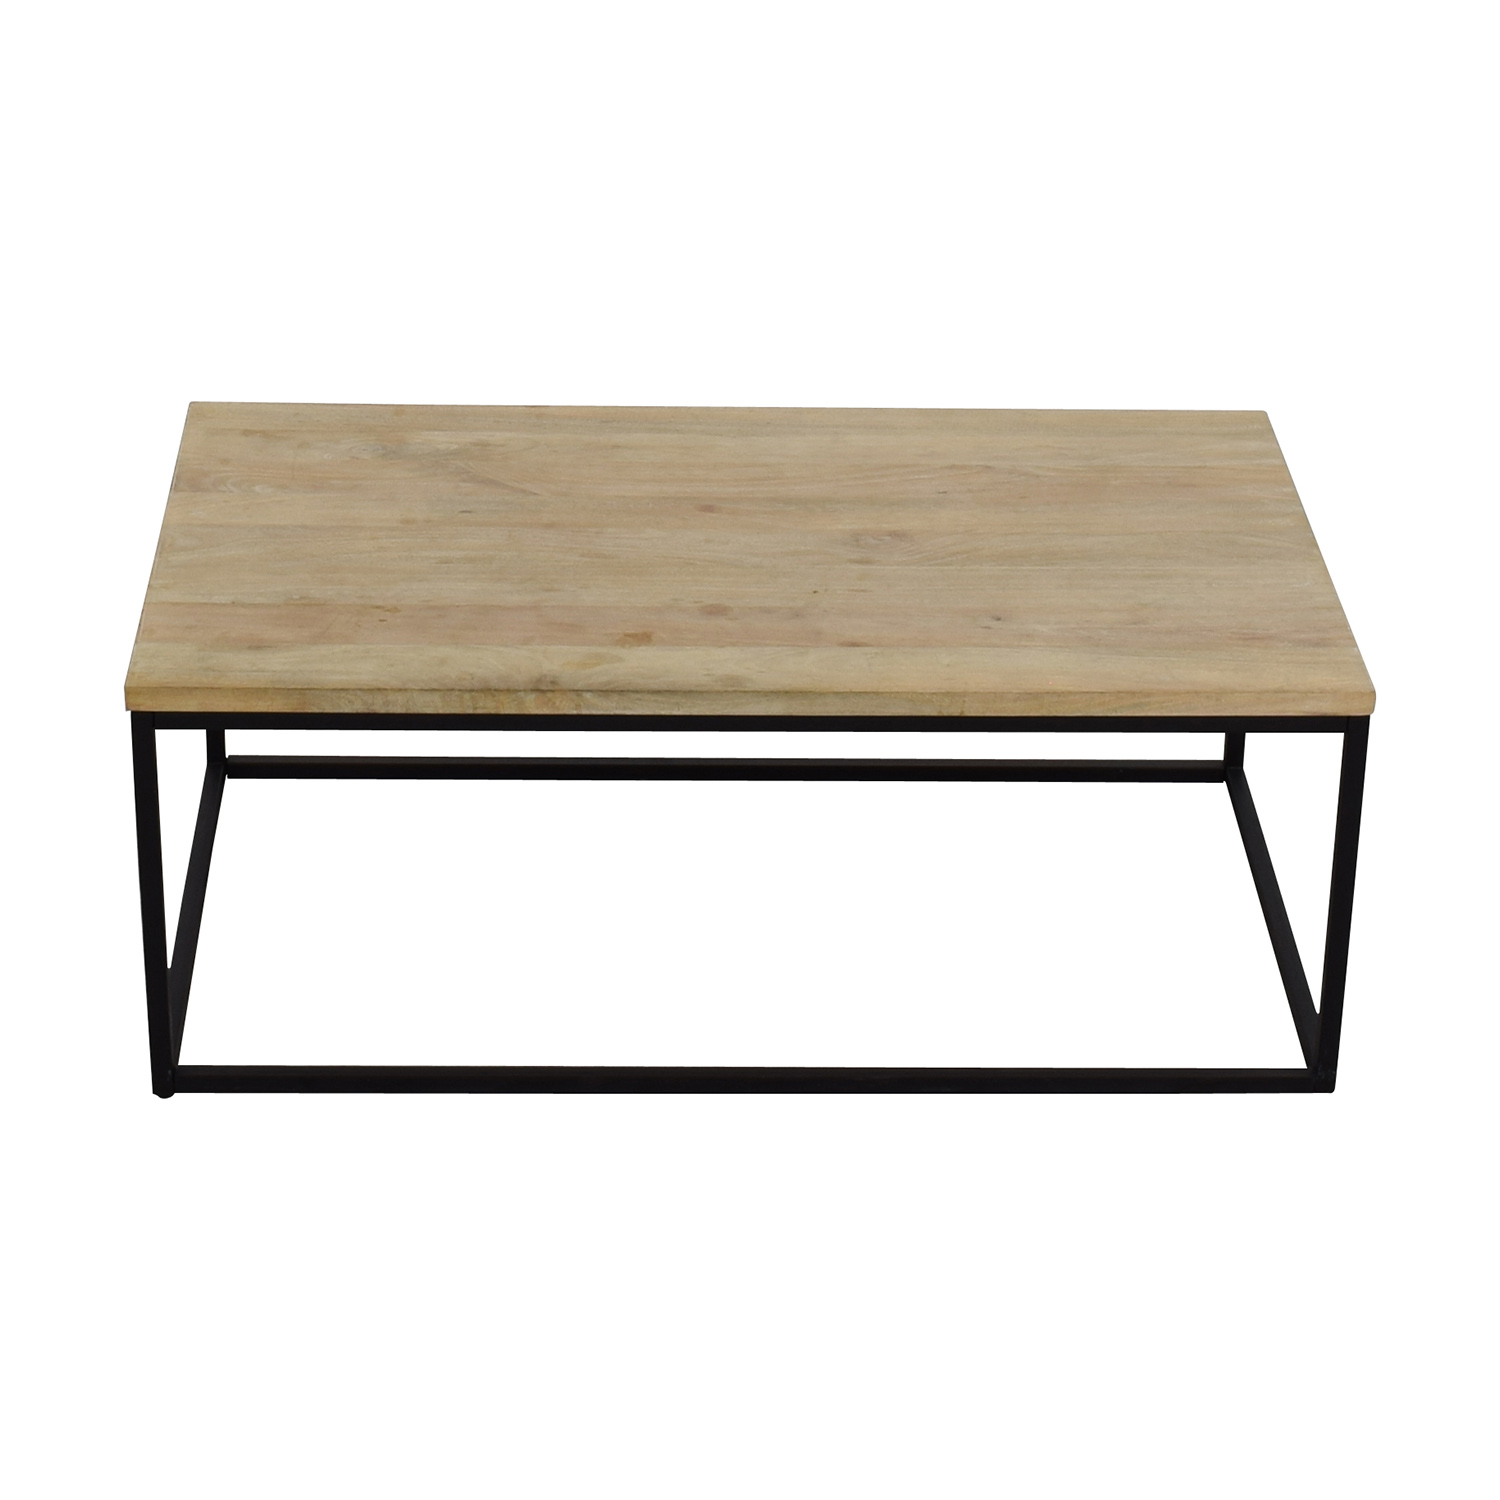 76% OFF Ashley Furniture Ashley Furniture Mallacar Coffee Table